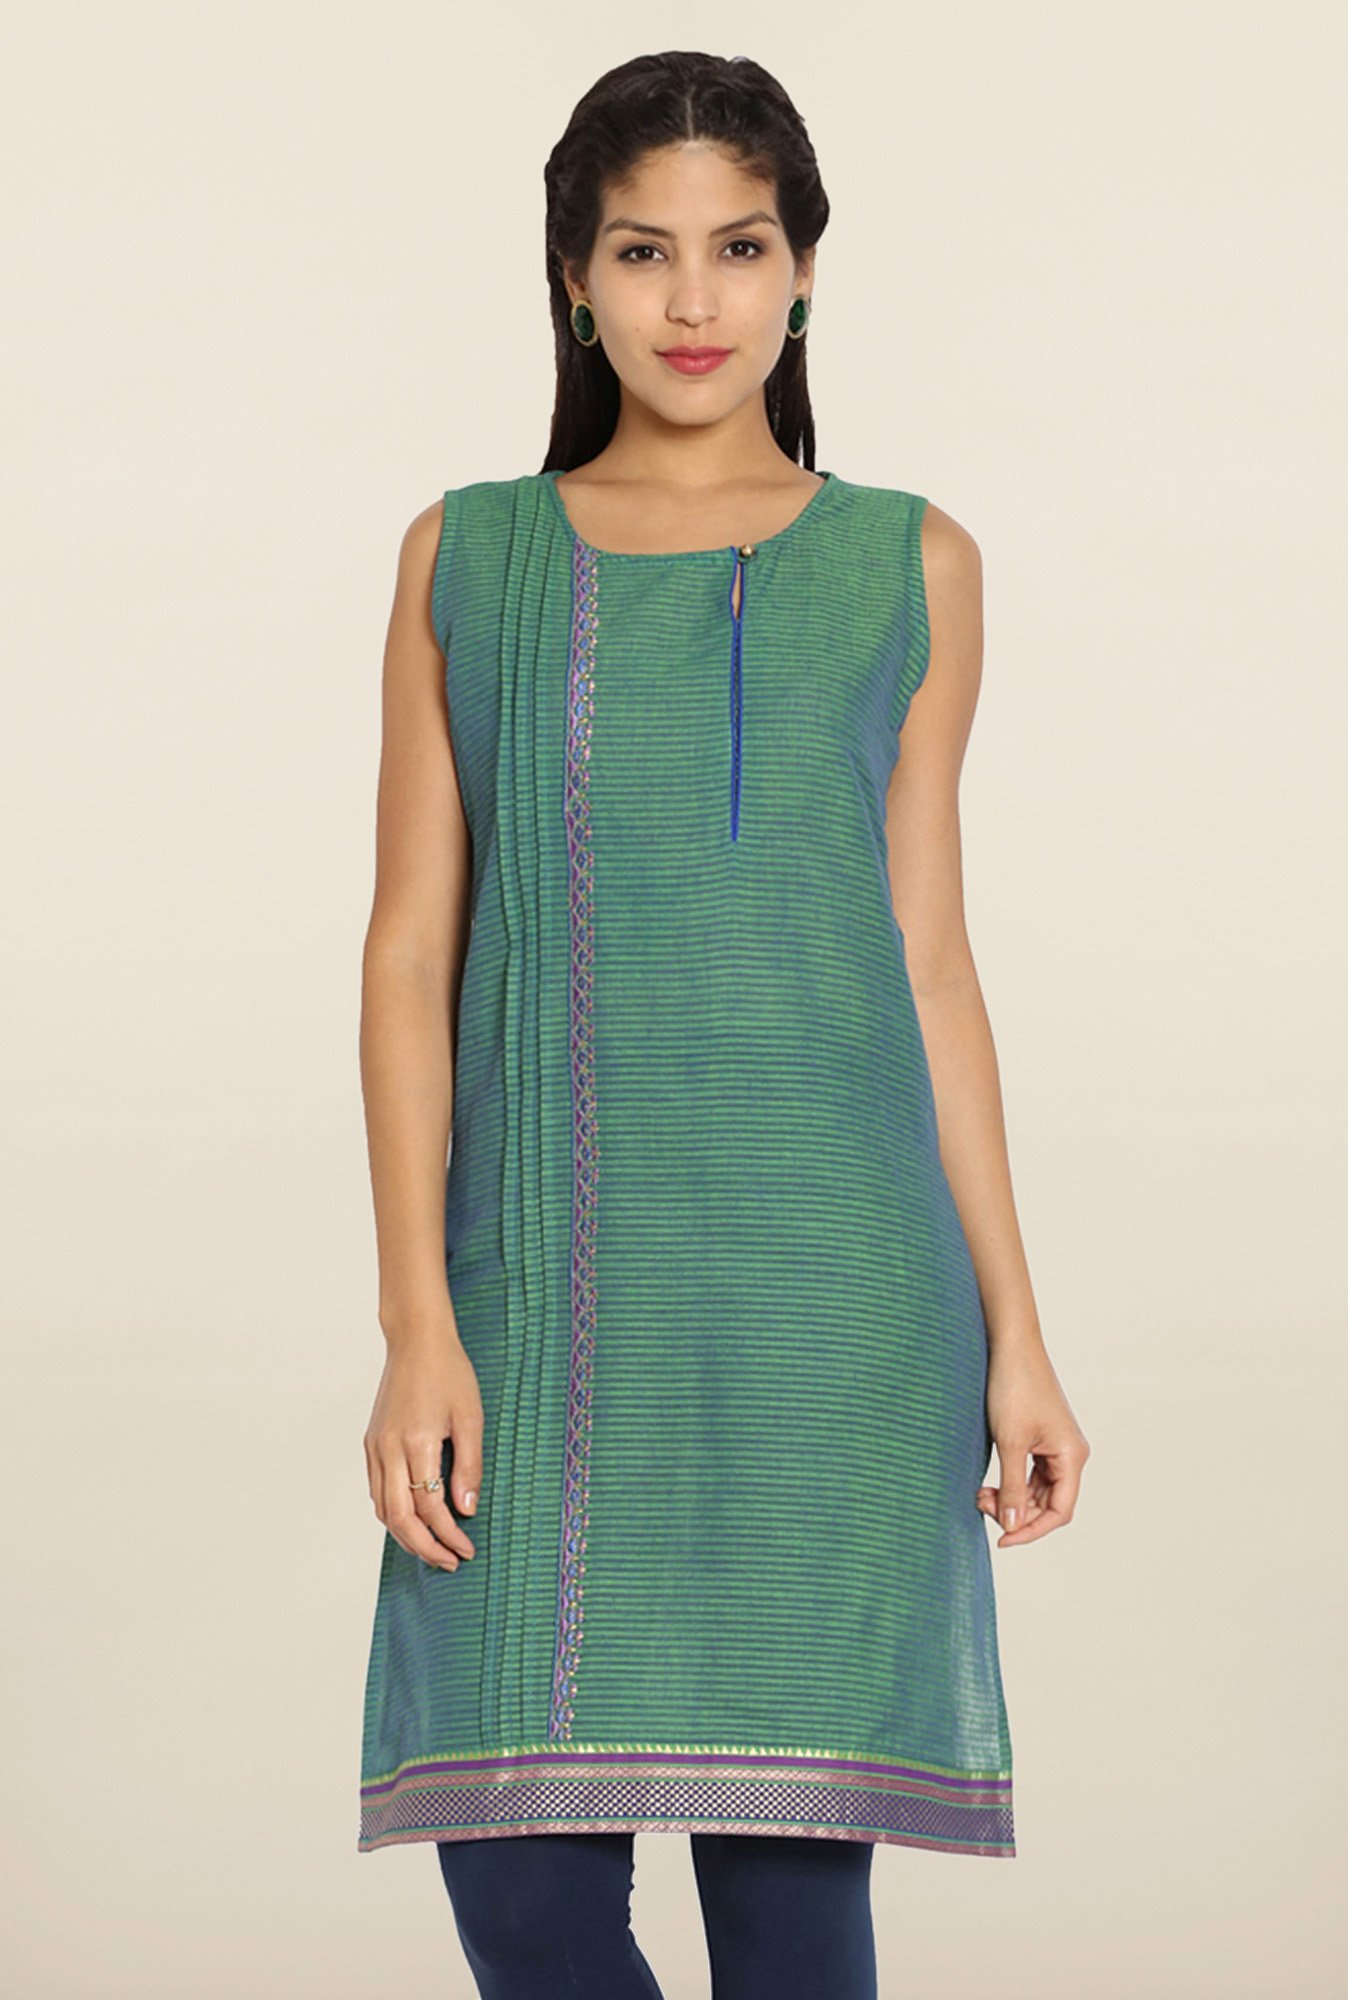 Soch Green & Royal Blue Cotton Kurti